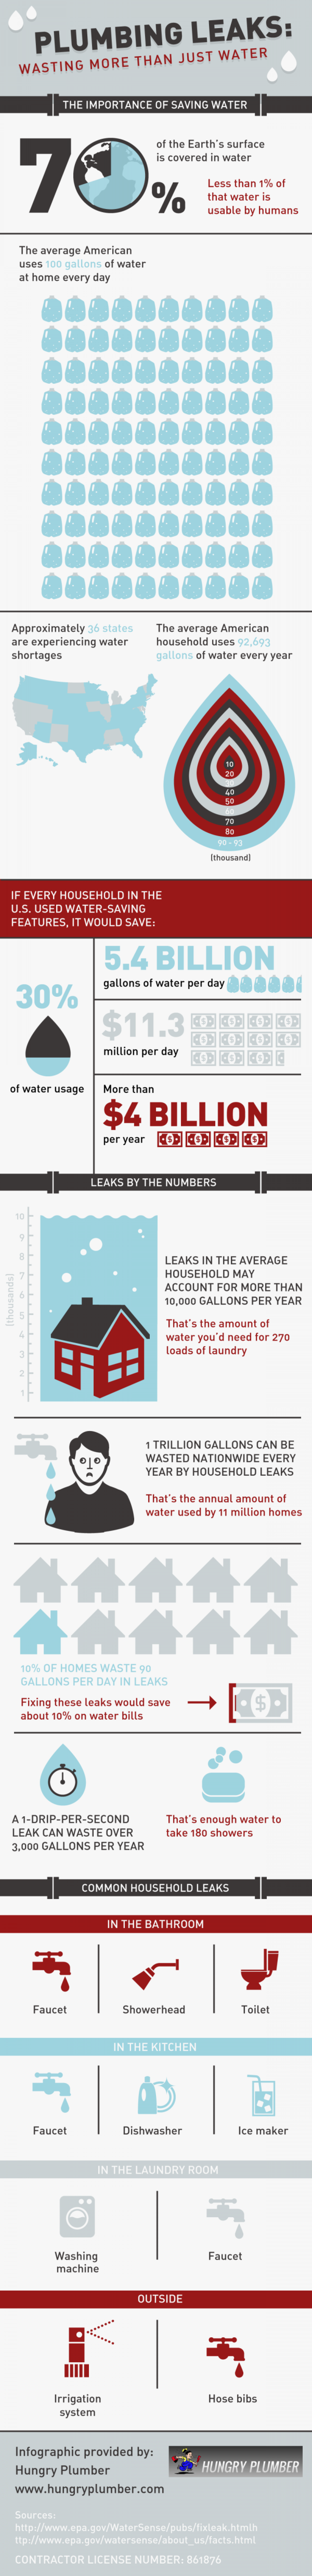 PLUMBING LEAKS: WASTING MORE THAN JUST WATER Infographic